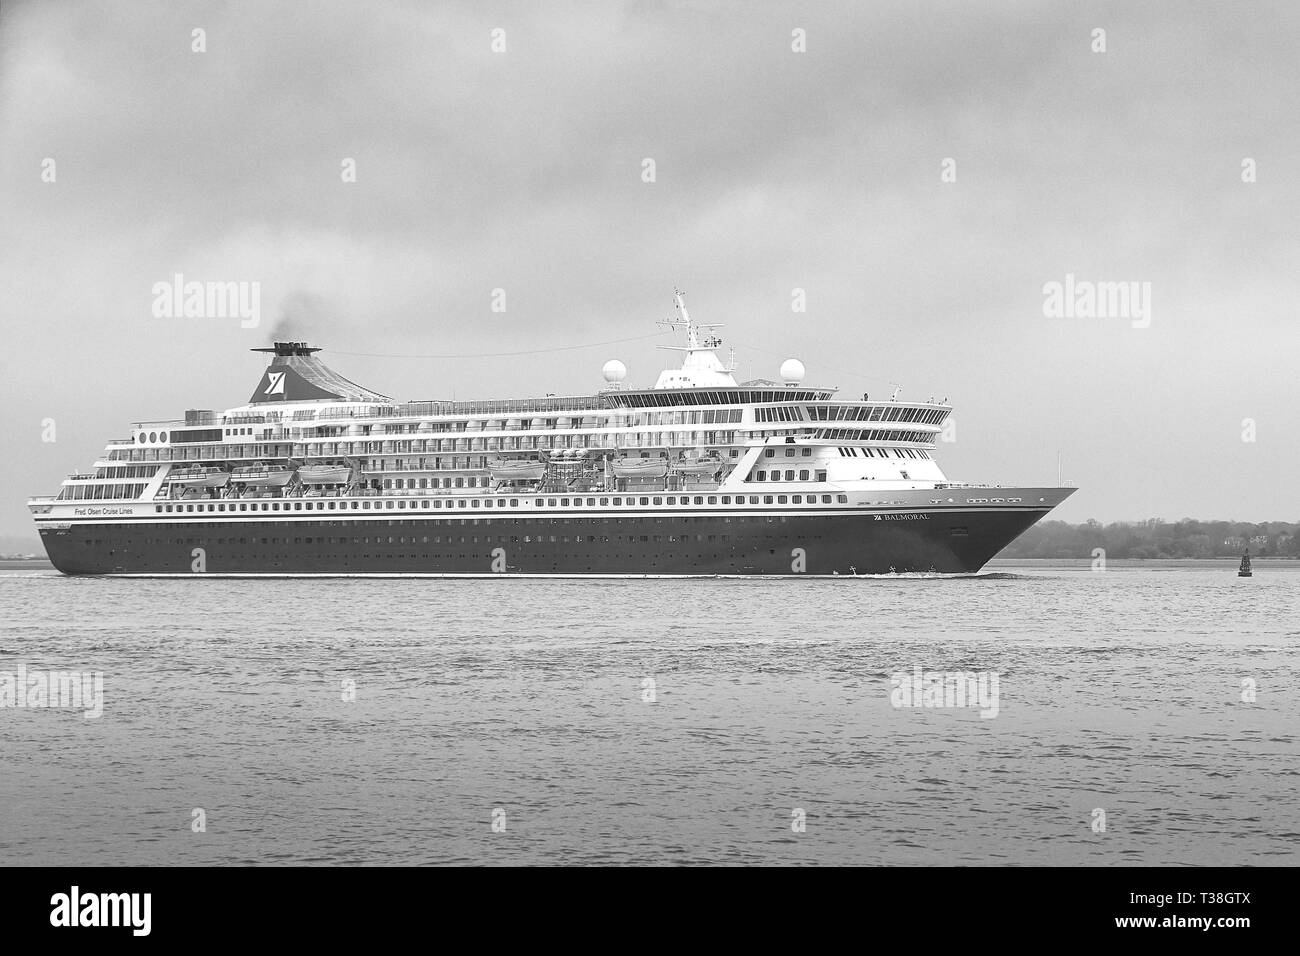 Black and White Photo Of The FRED OLSEN CRUISE LINES, Cruise Ship, BALMORAL, Underway, Departing The Port Of Southampton, UK. 22 March 2019. - Stock Image